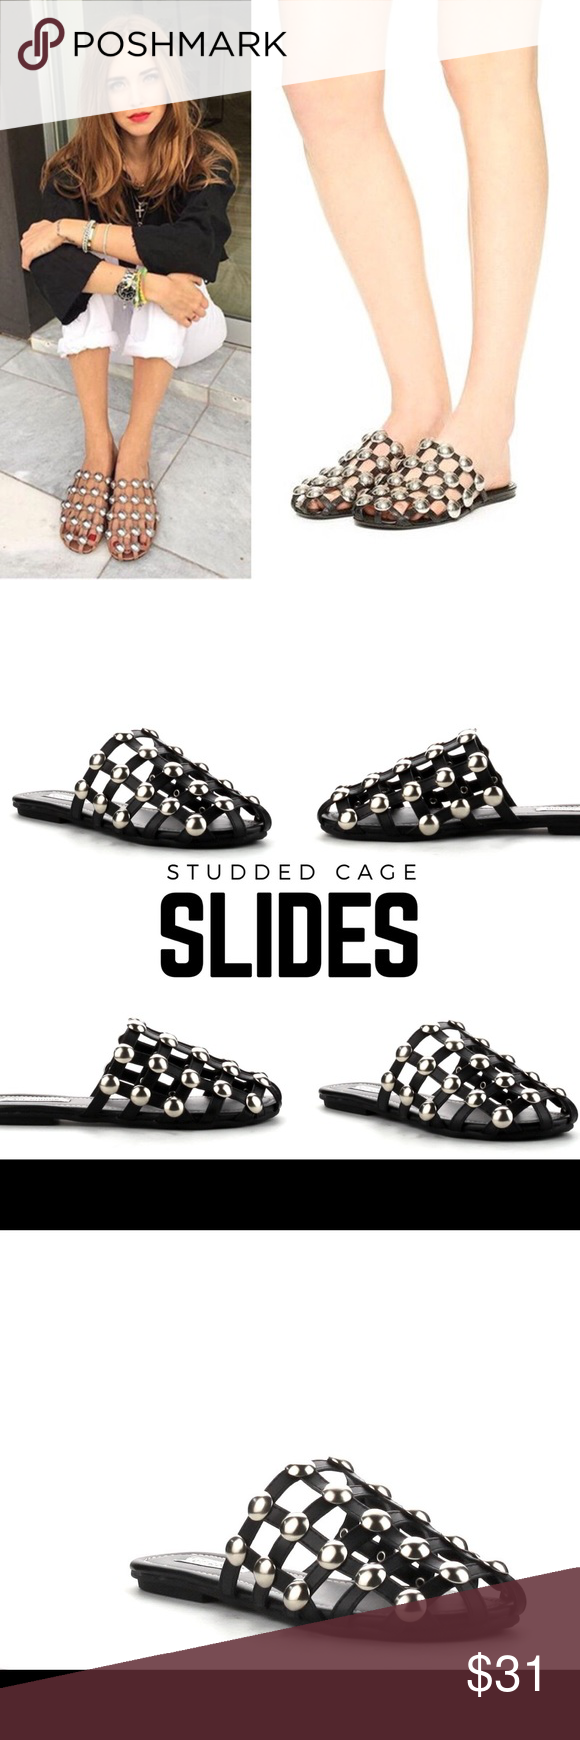 664db5f6d20b Studded Cage Slides Faux leather caged slides with silver studs Cape Robbin  Shoes Sandals